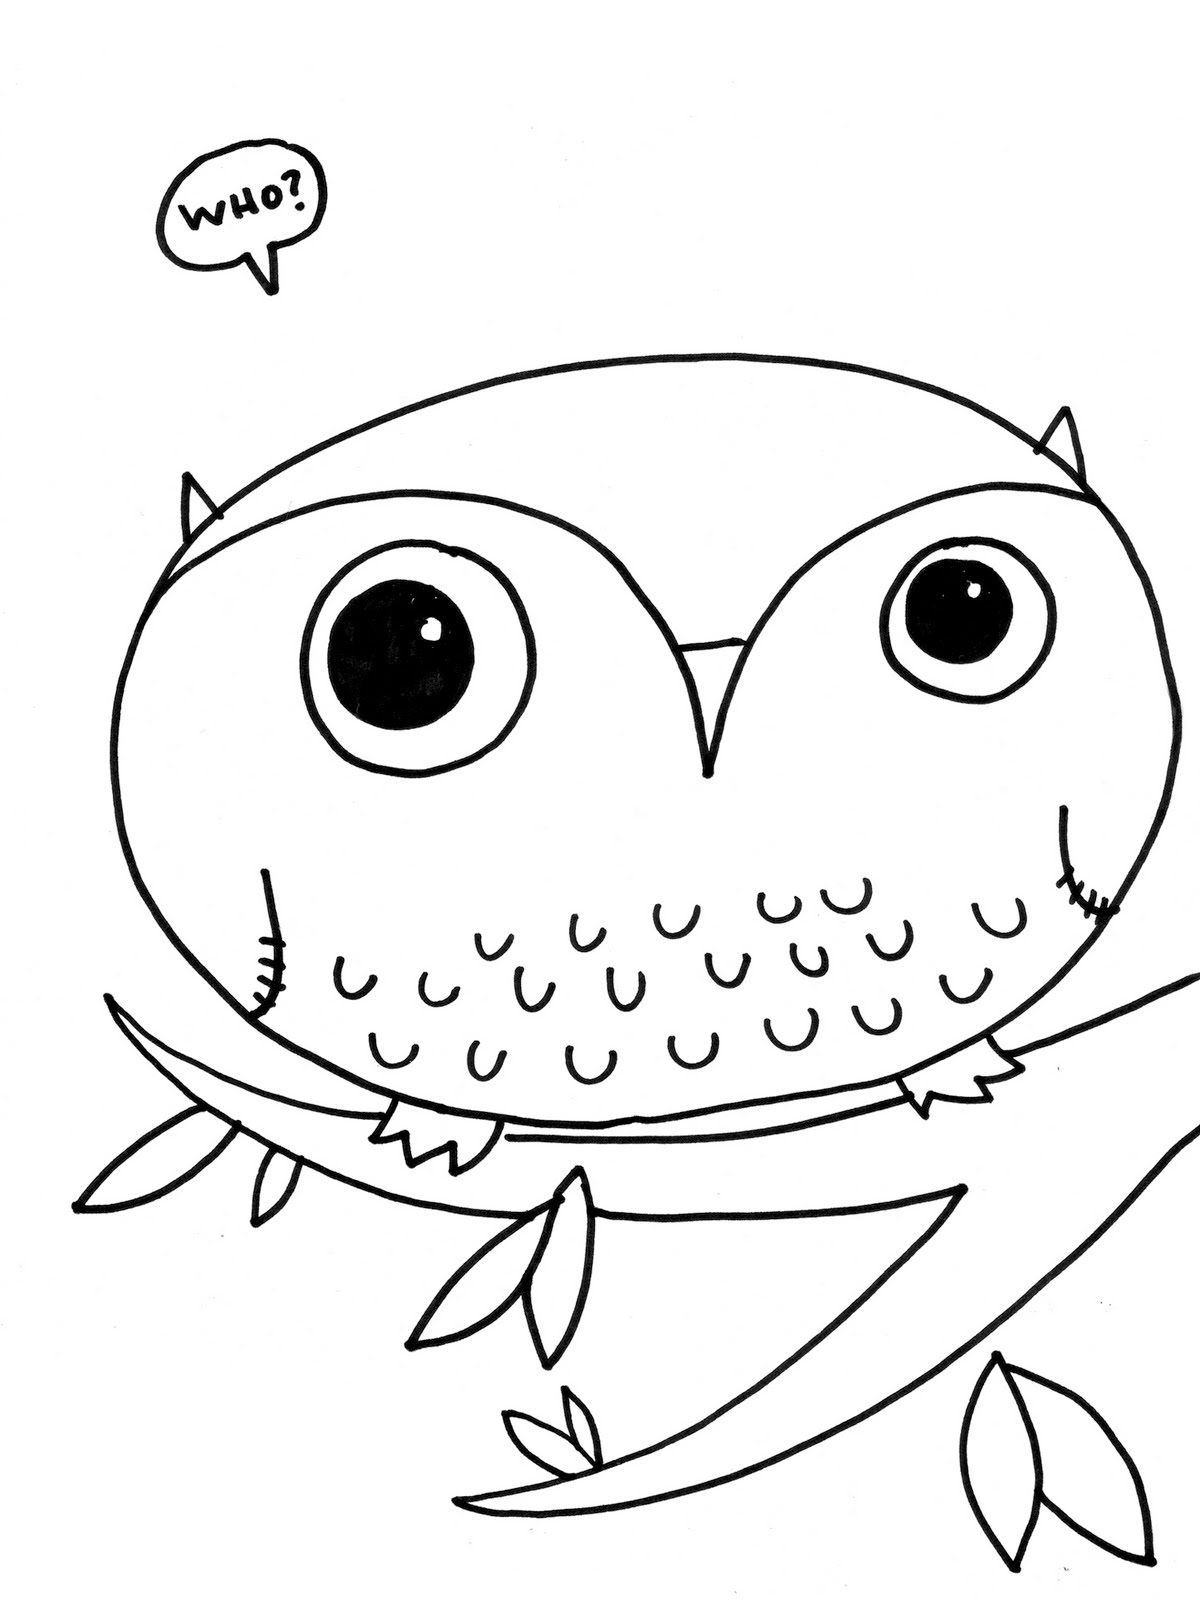 free printable owl coloring pages for kids, coloring